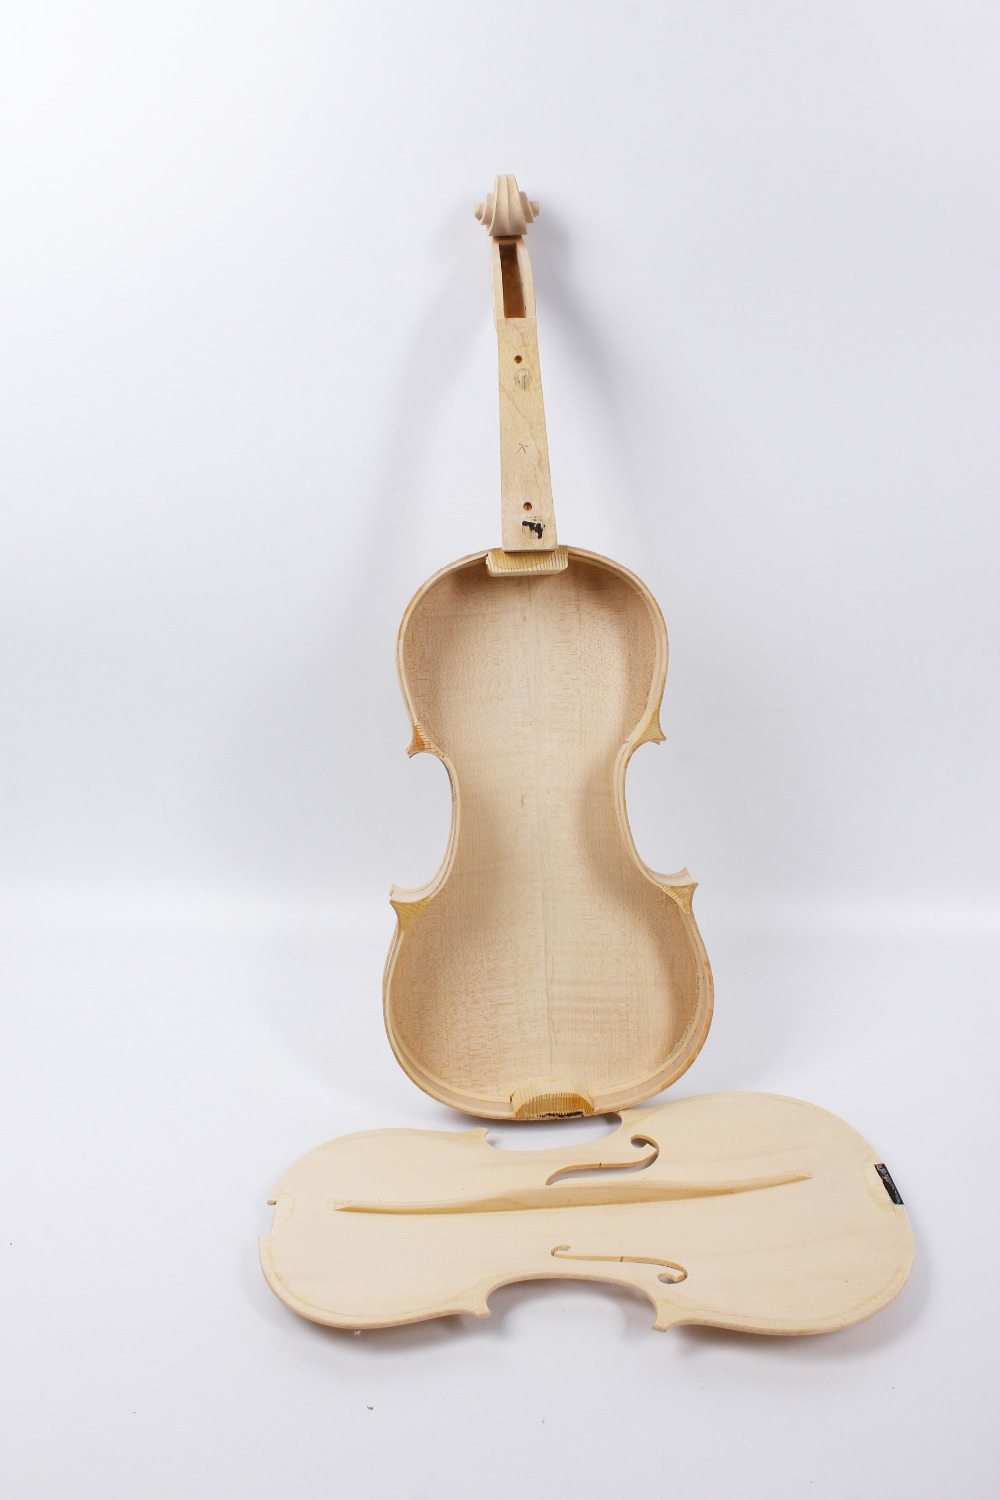 Yinfente Unfinished Violin Wood Flame-Maple White Spruce Unglue Full-Size 4/4 title=